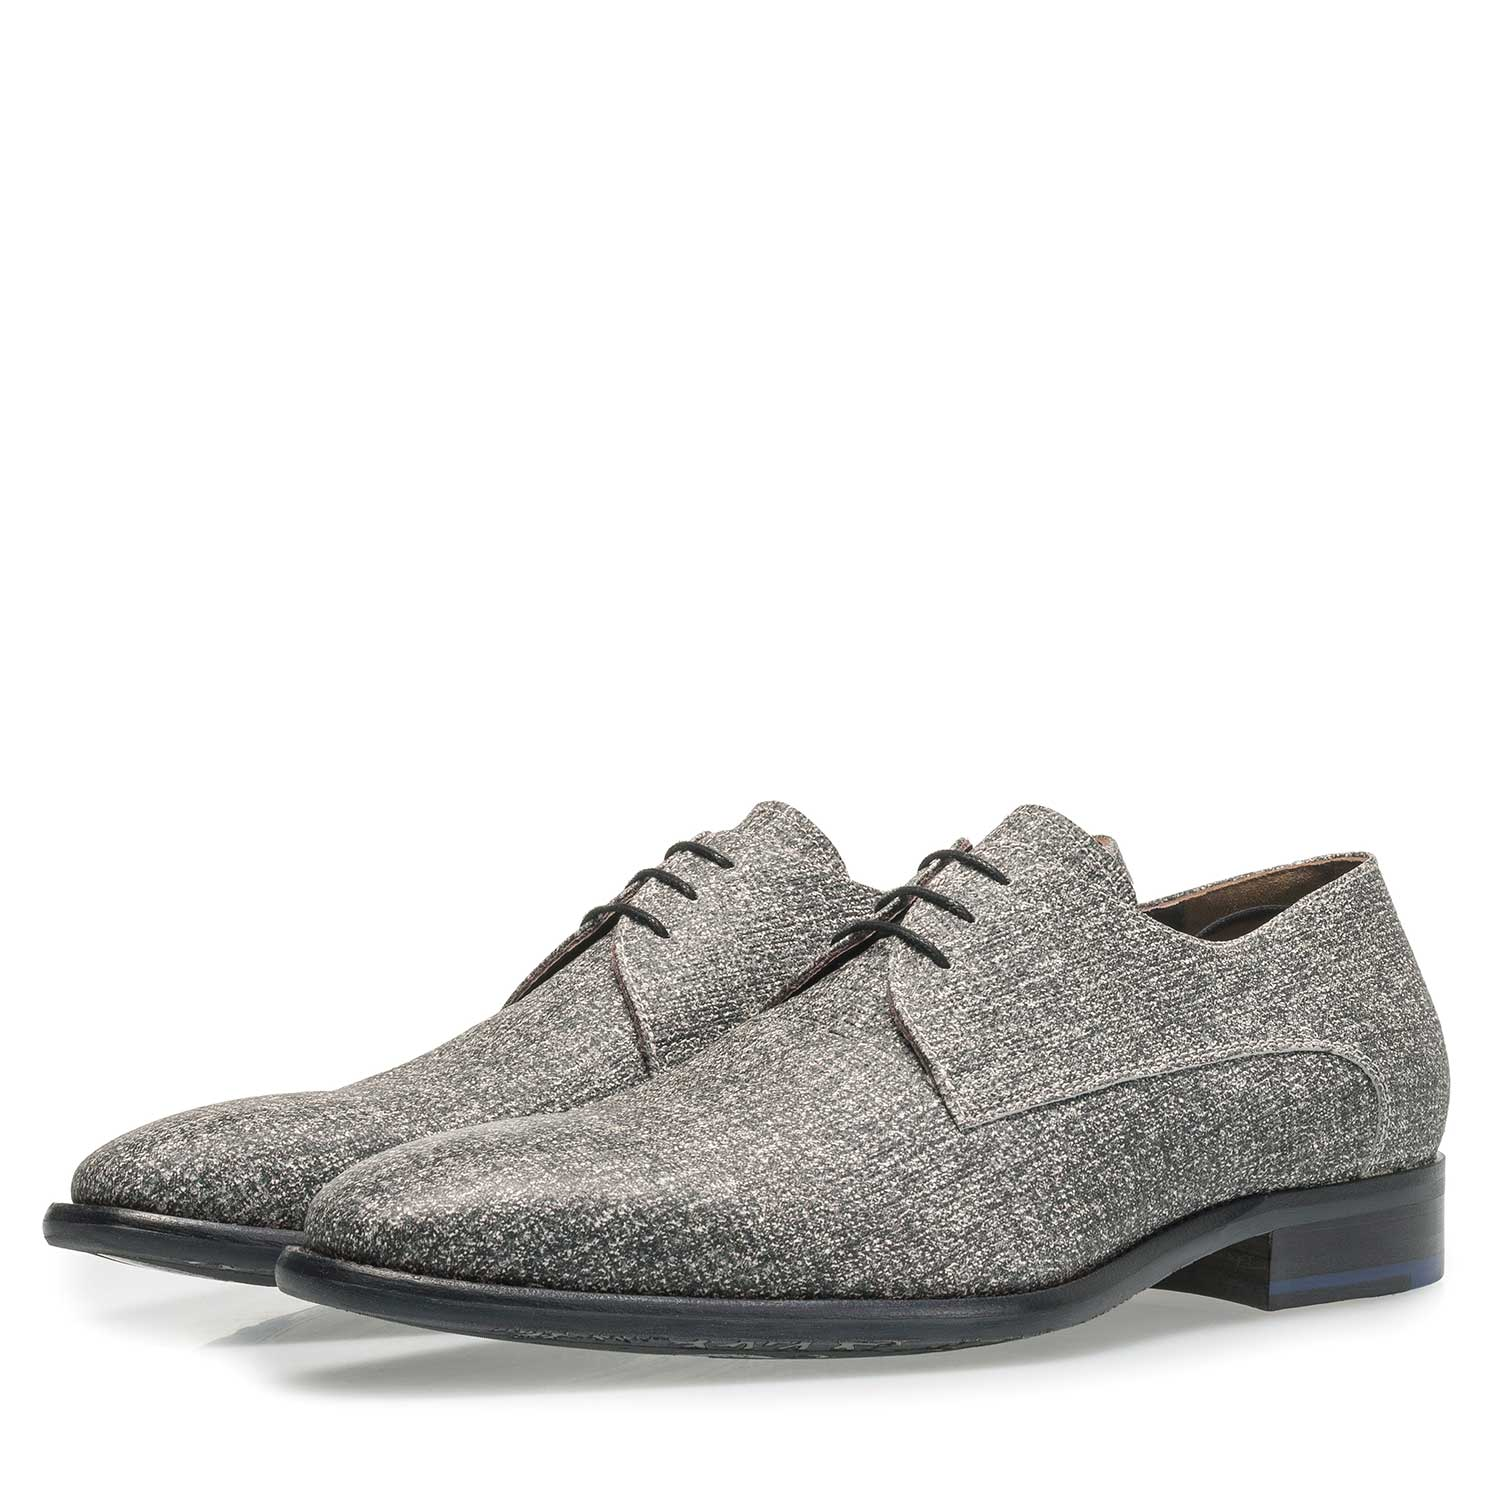 18146/00 - Grey leather lace shoe with white print